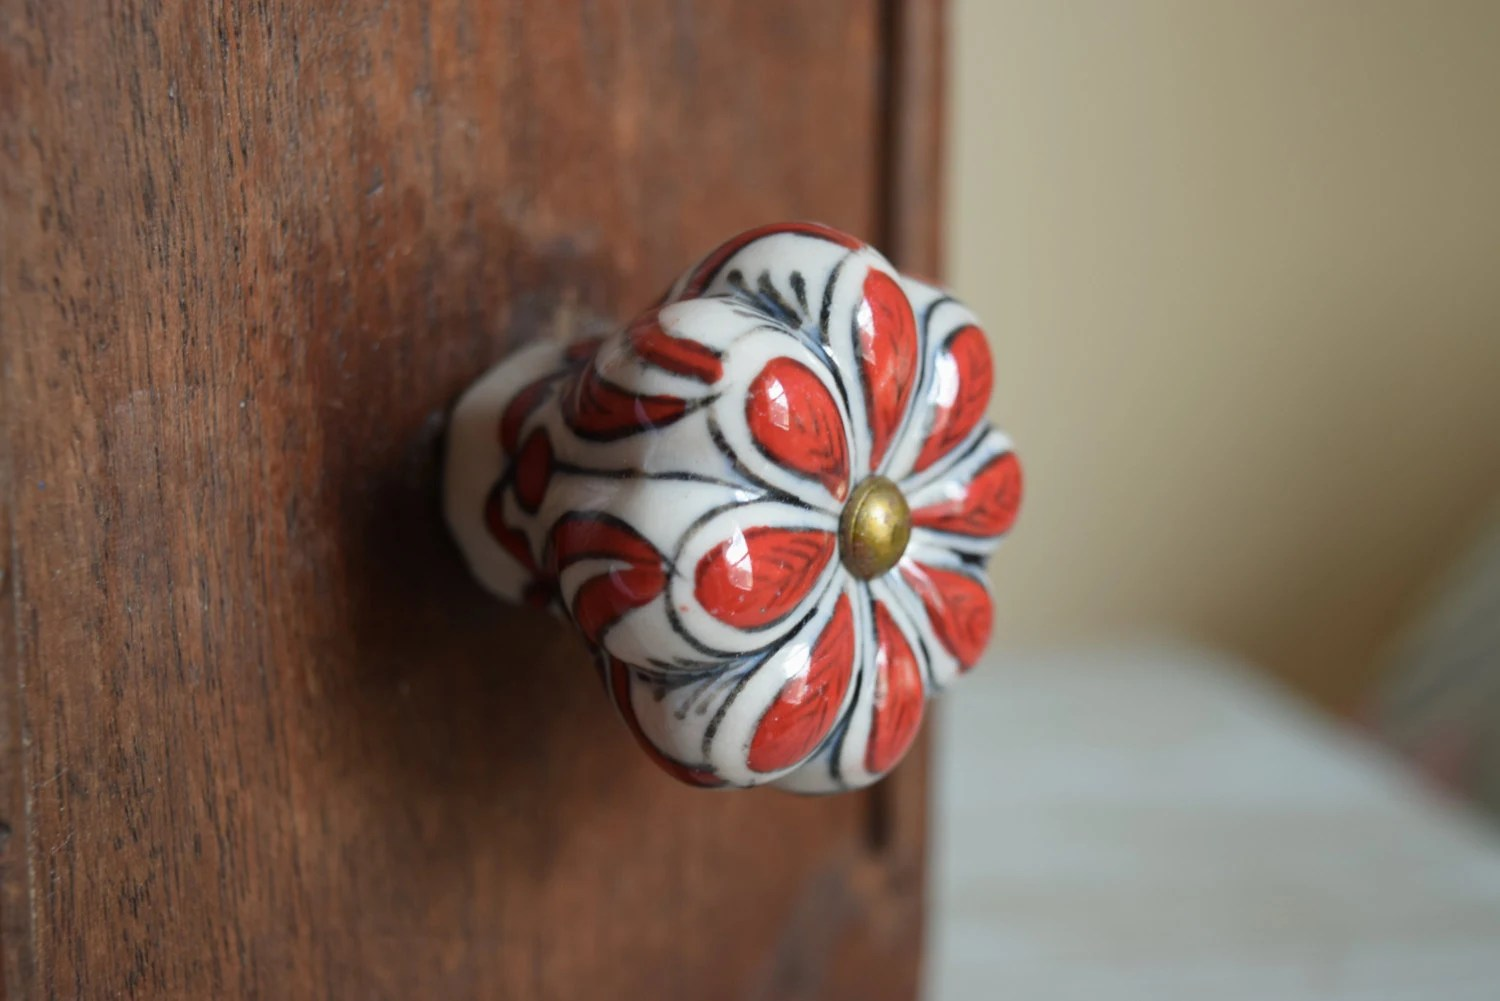 Awesome Hooks And Knobs By HookAndKnob On Etsy